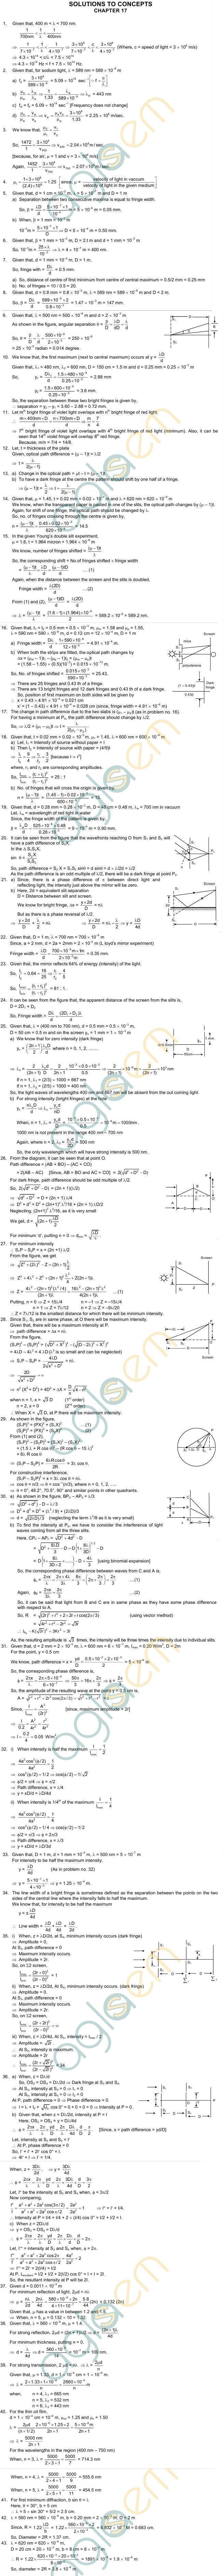 HC Verma Solutions: Chapter 17 - Light Waves